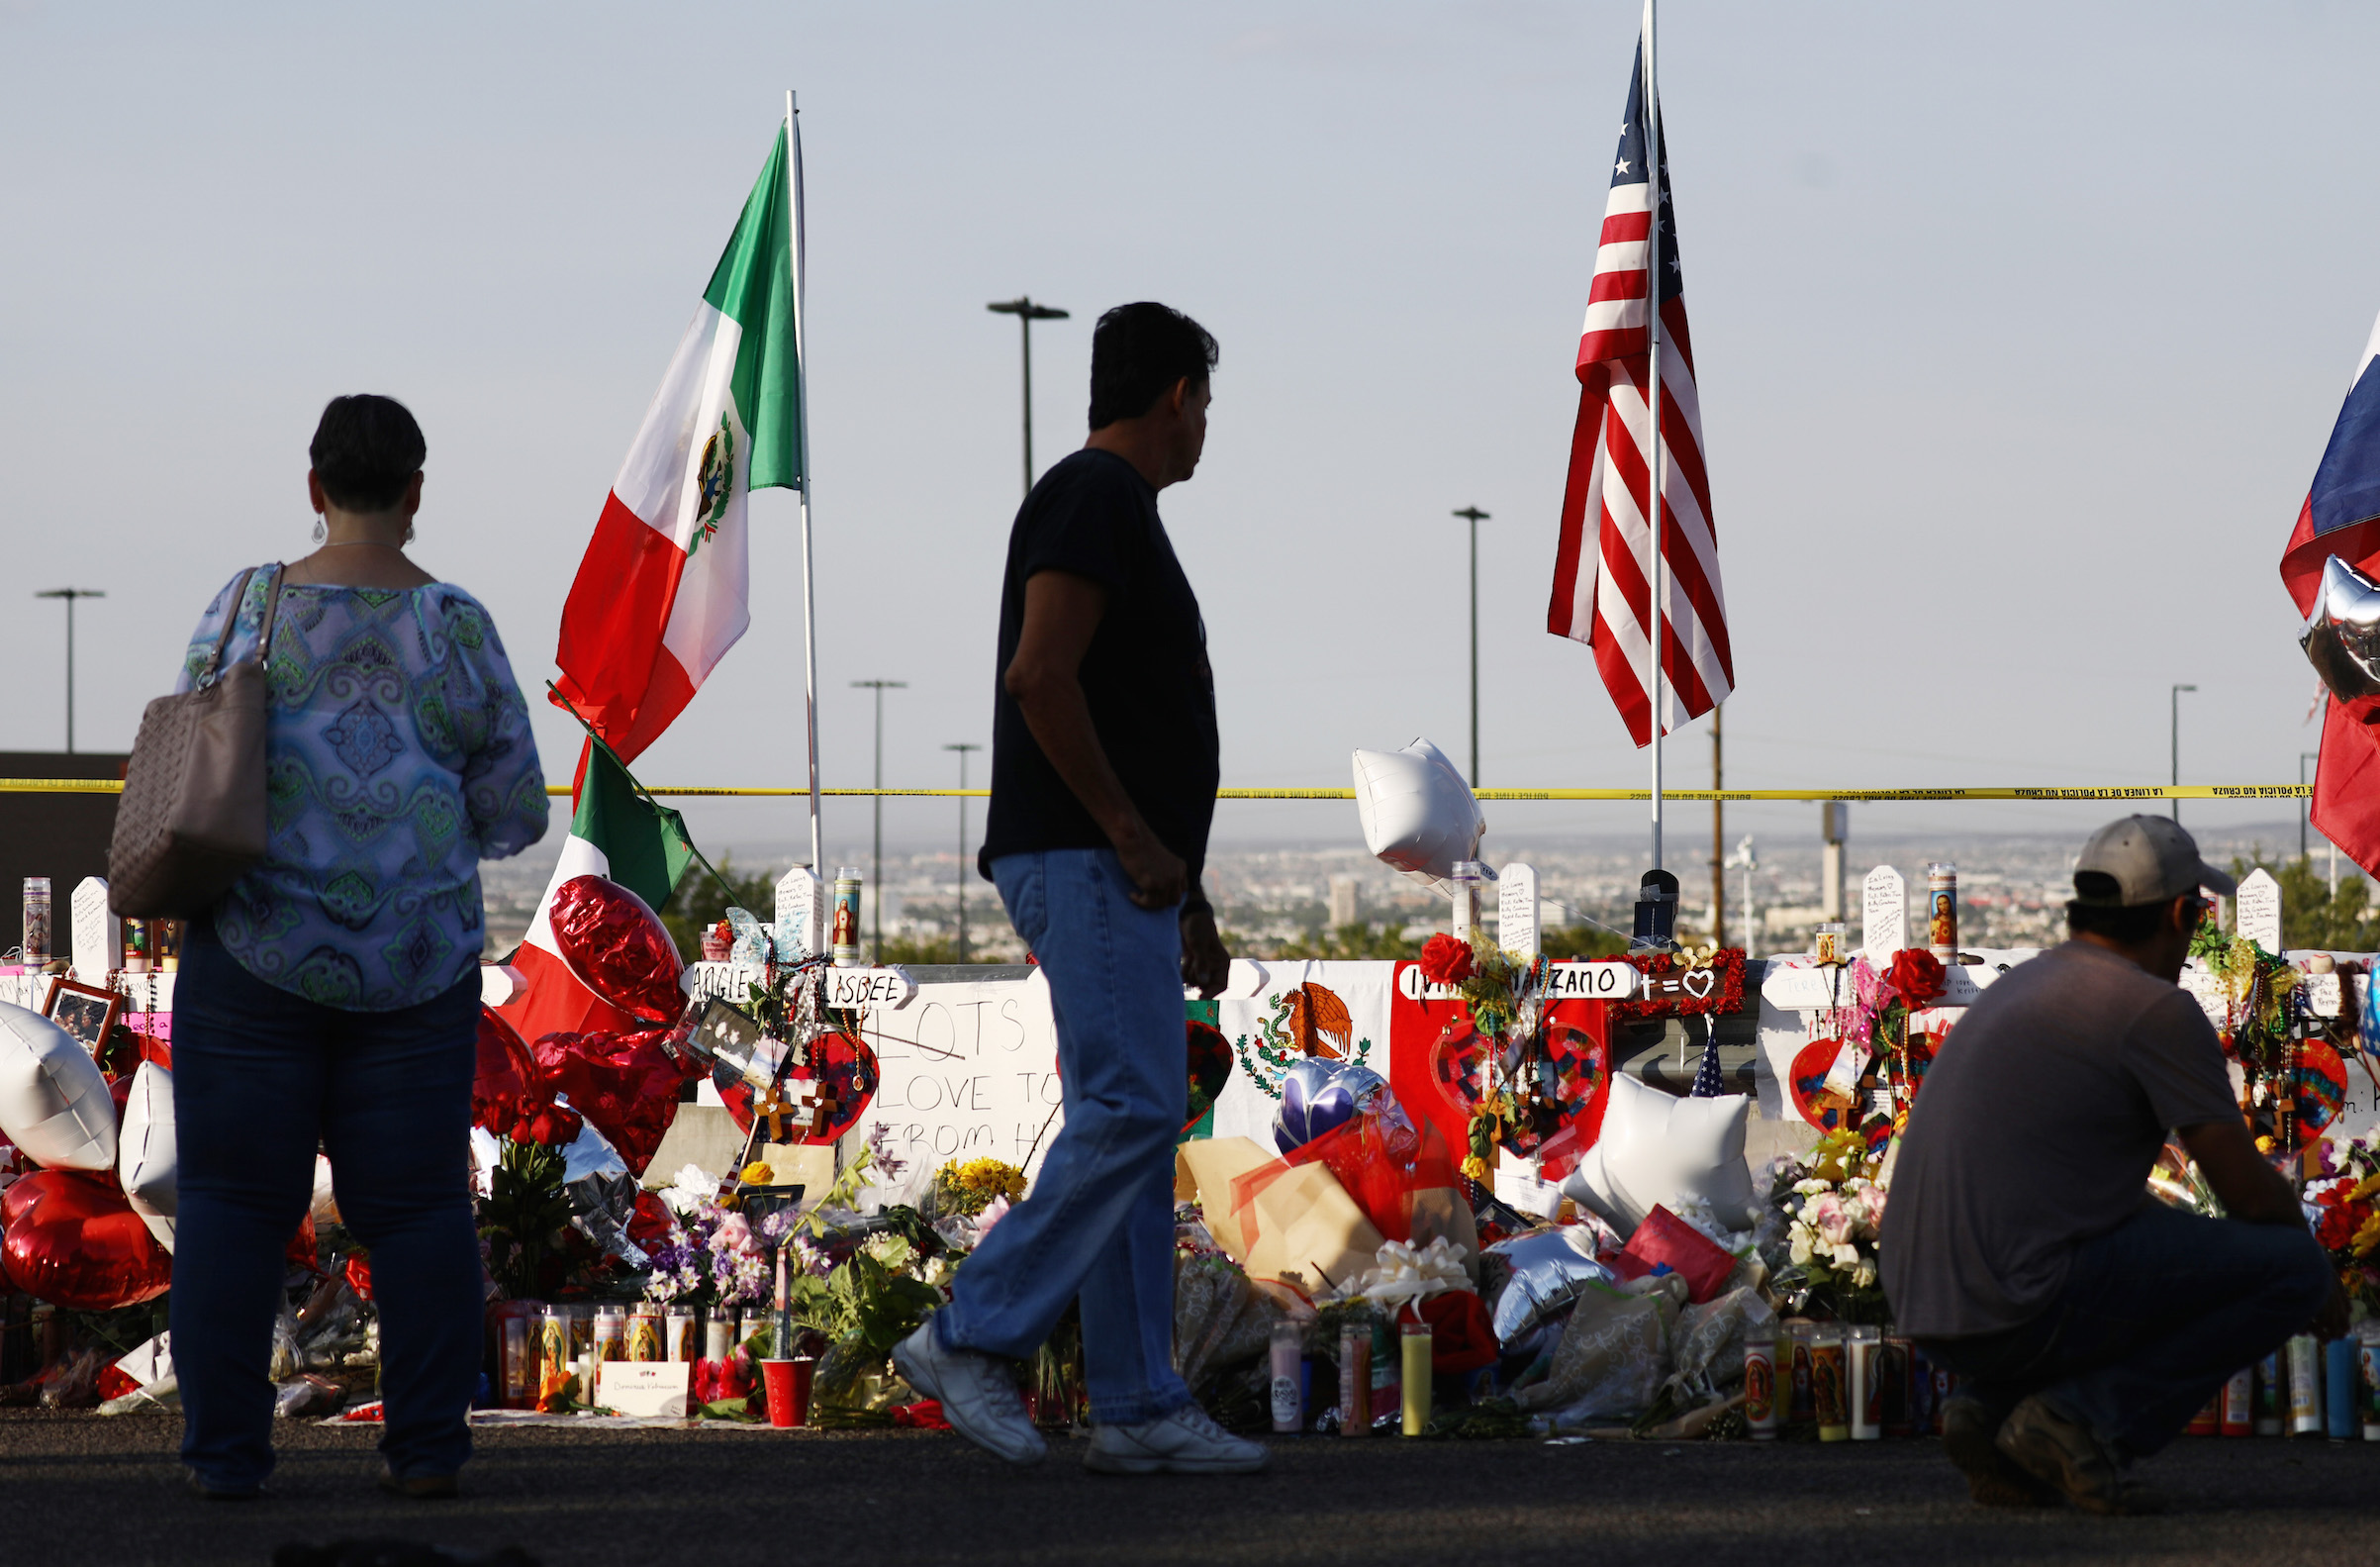 The Mexican and U.S. flags fly at a makeshift memorial honoring victims outside Walmart, near the scene of a mass shooting on Aug. 7, 2019 in El Paso, Texas.